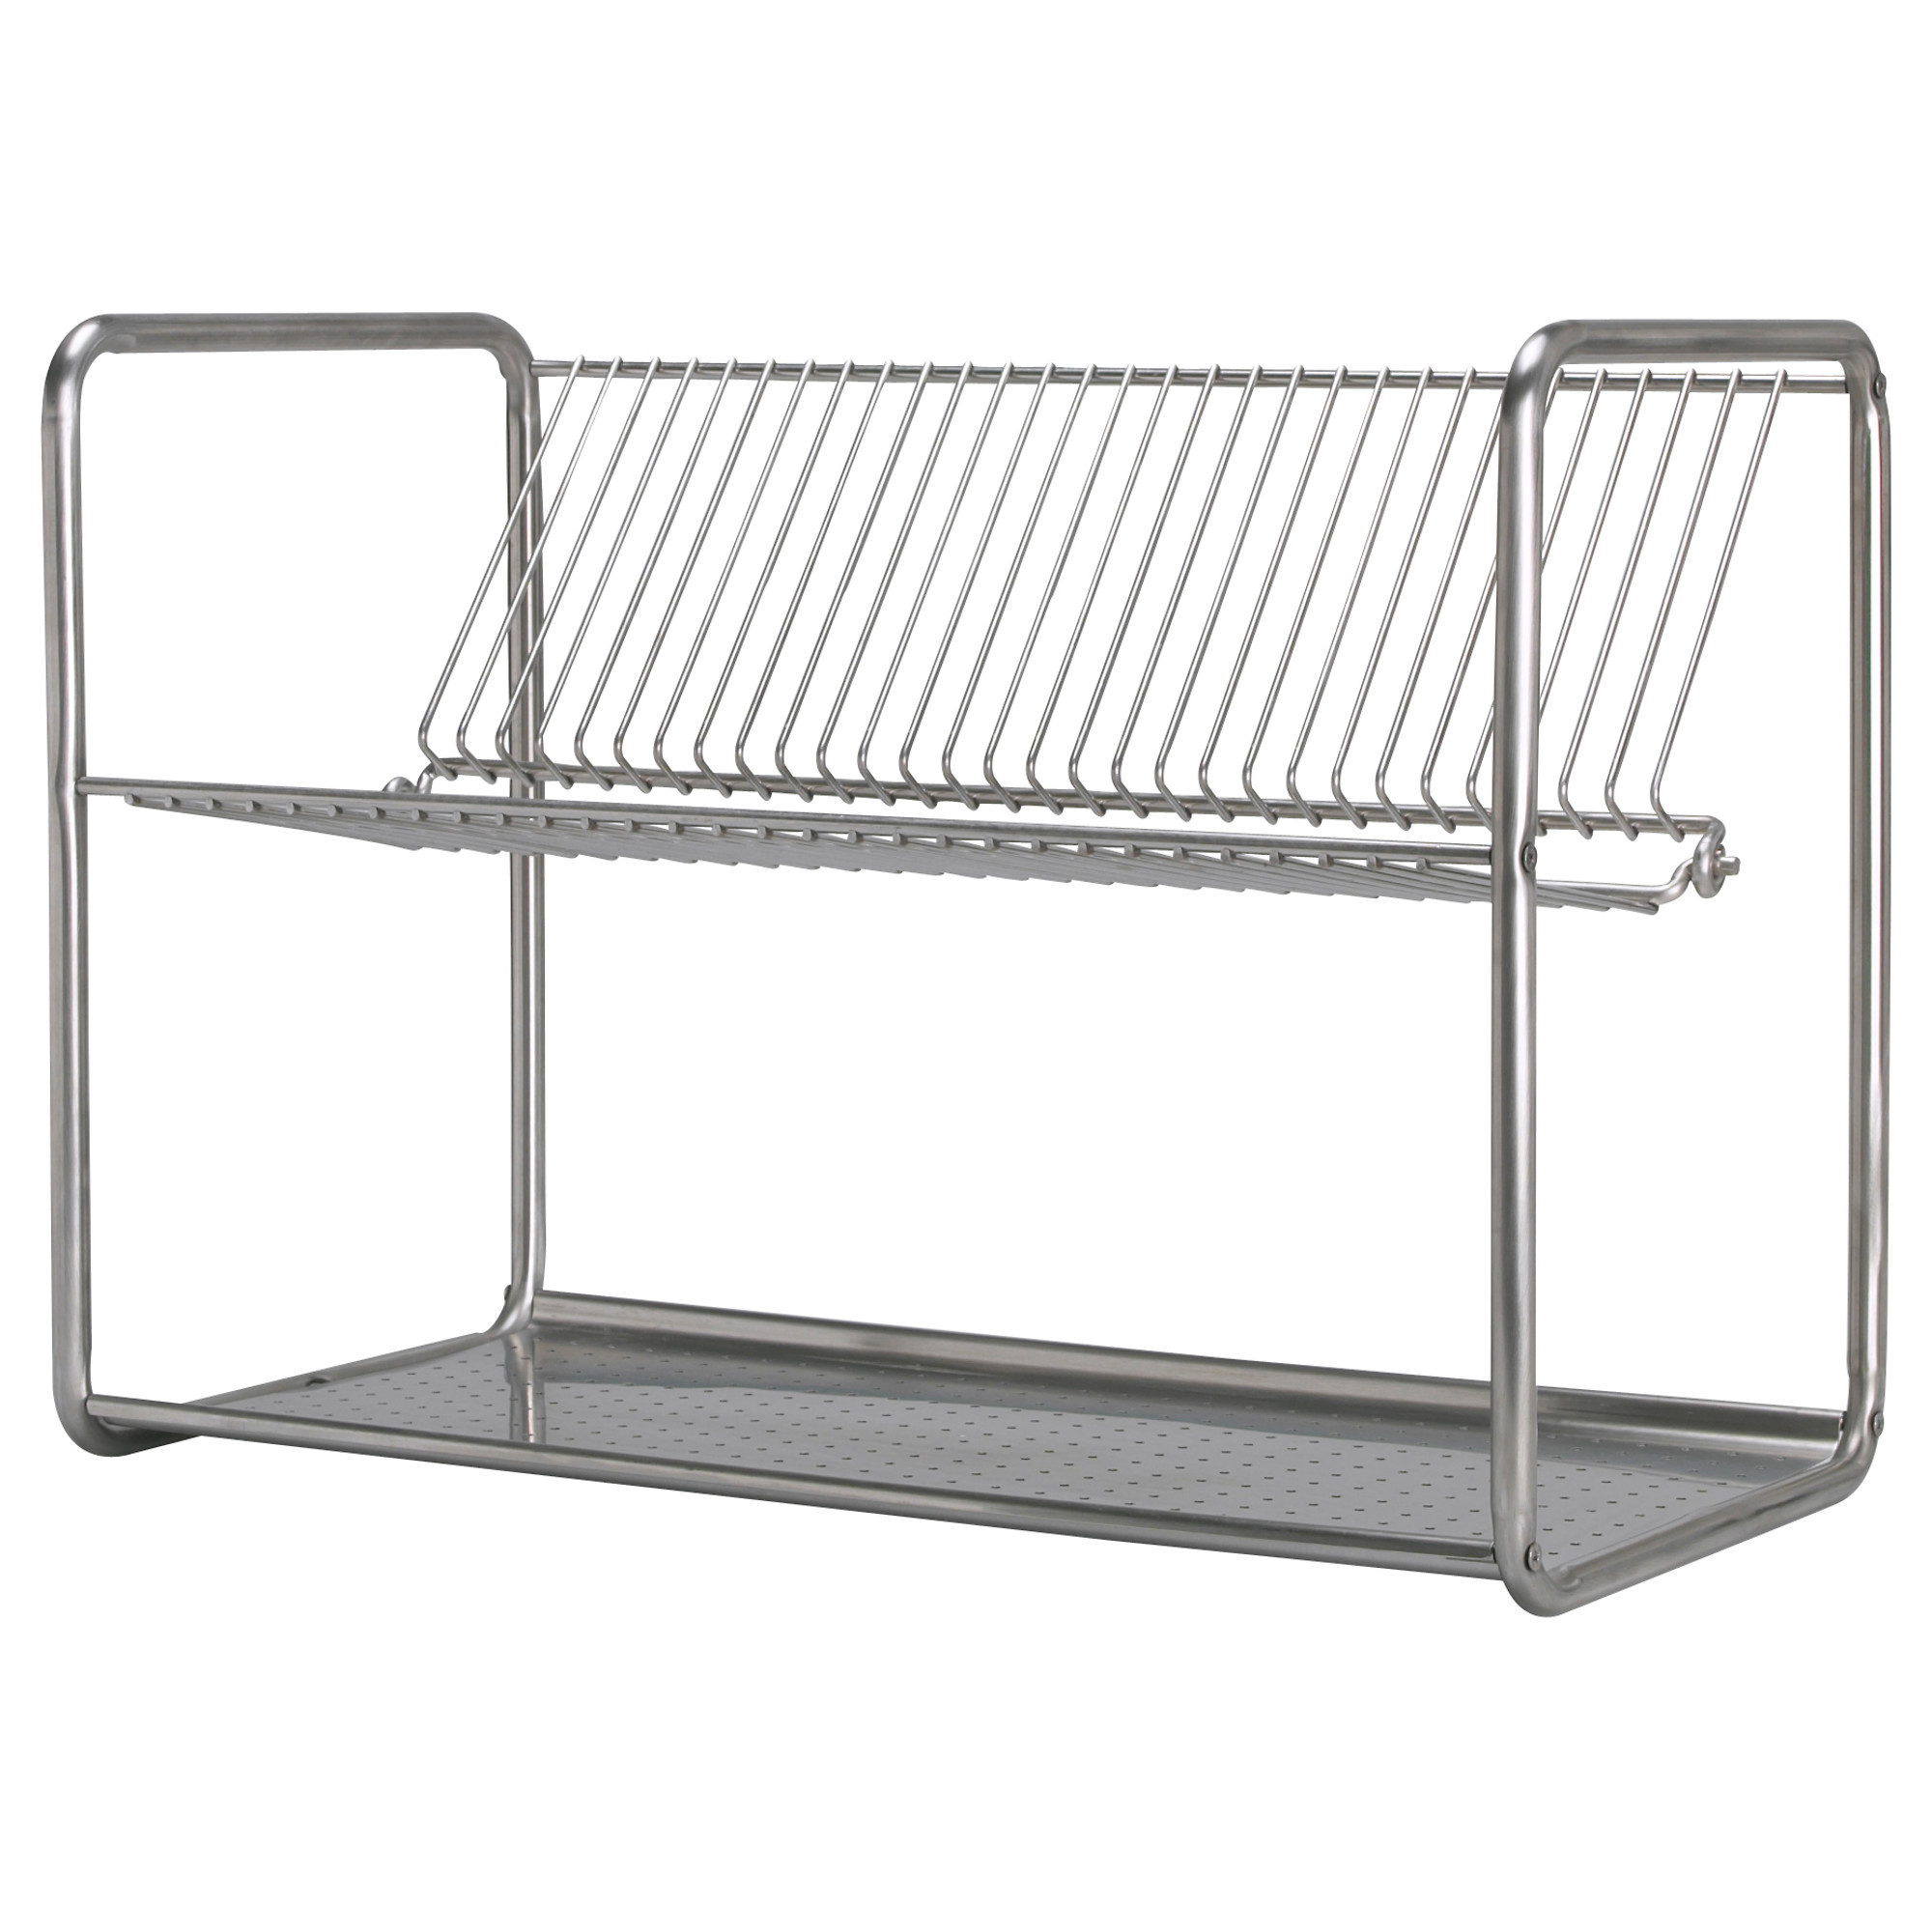 free big dish drying with two racks stainless steel with wooden dish rack ikea  sc 1 st  thisnext.us & Wooden Dish Rack Ikea. Ikea Kitchen Storage Cabinet With Wooden Dish ...